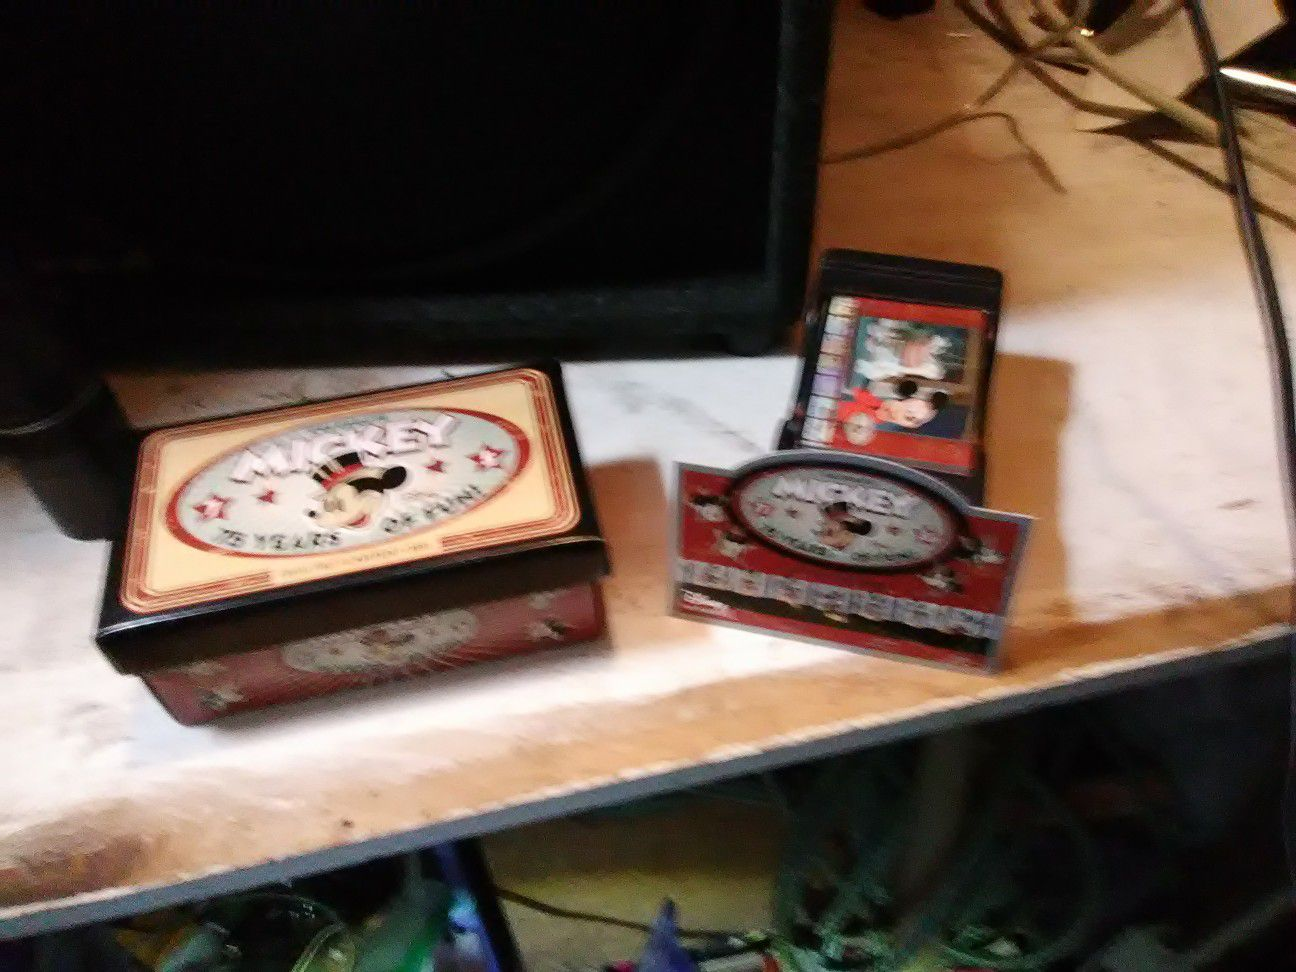 75 years, Mickey mouse 2004 upper deck card set